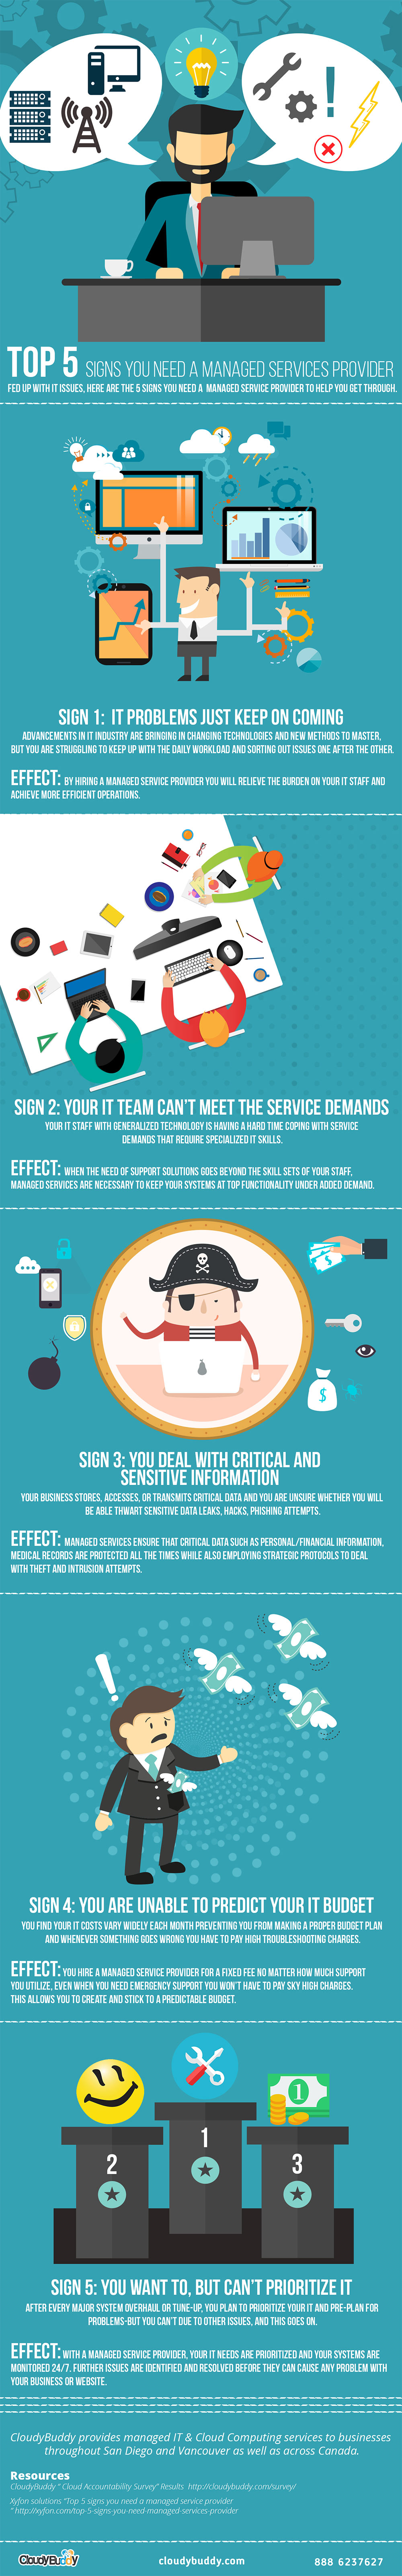 Top-5-Signs-That-You-Need-A-Managed-Services-Provider-Main-Infographic